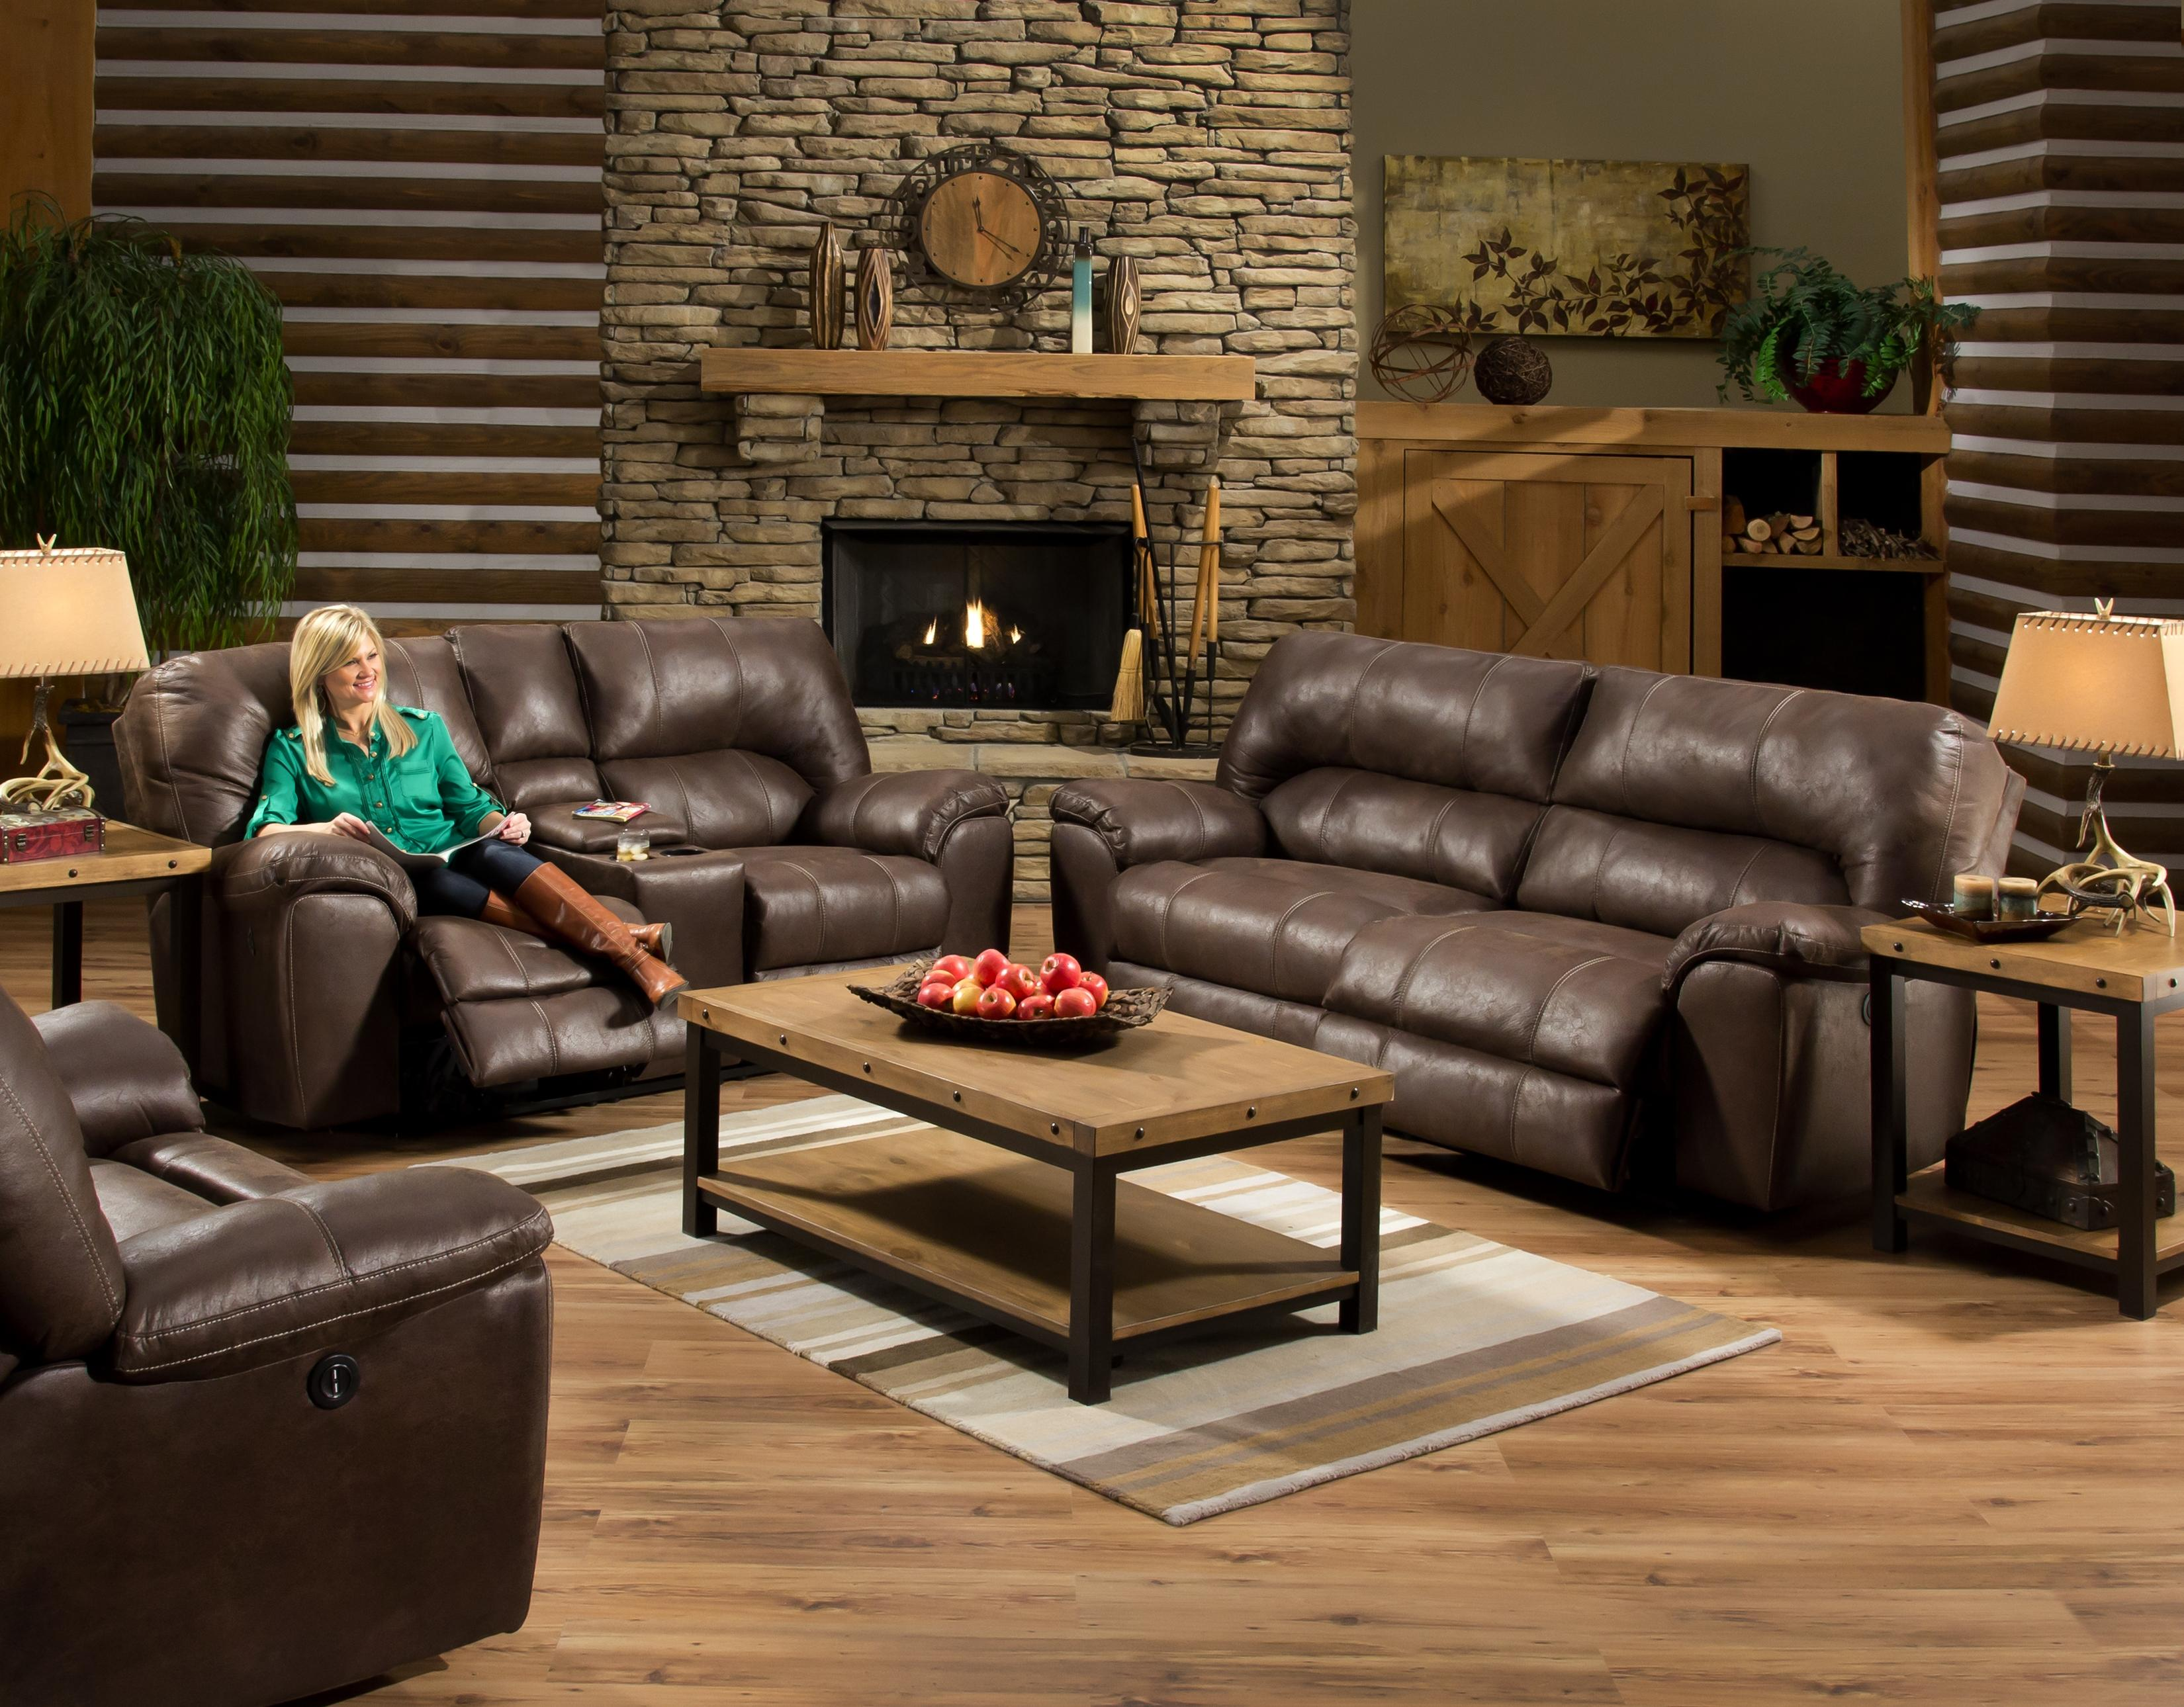 American Furniture Af740 Reclining Sofa With Headrest Prime Brothers Furniture Reclining Sofas